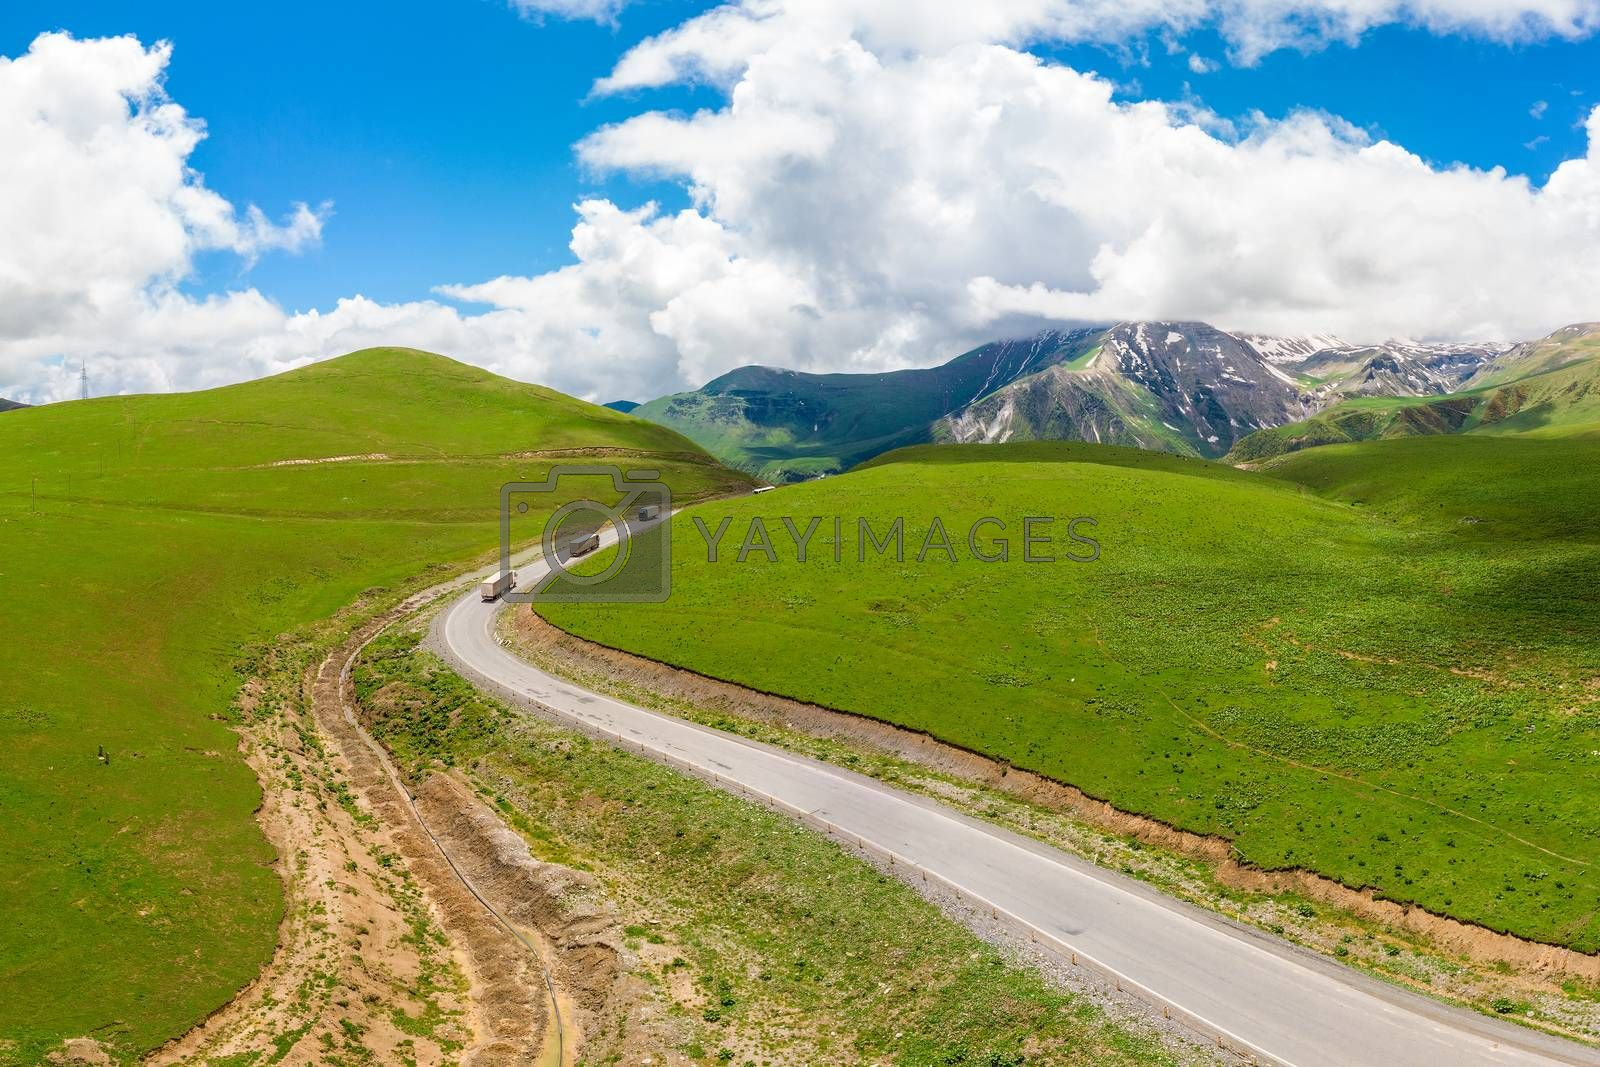 Wagons on a mountain road, scenic landscape from quadrocopter top view